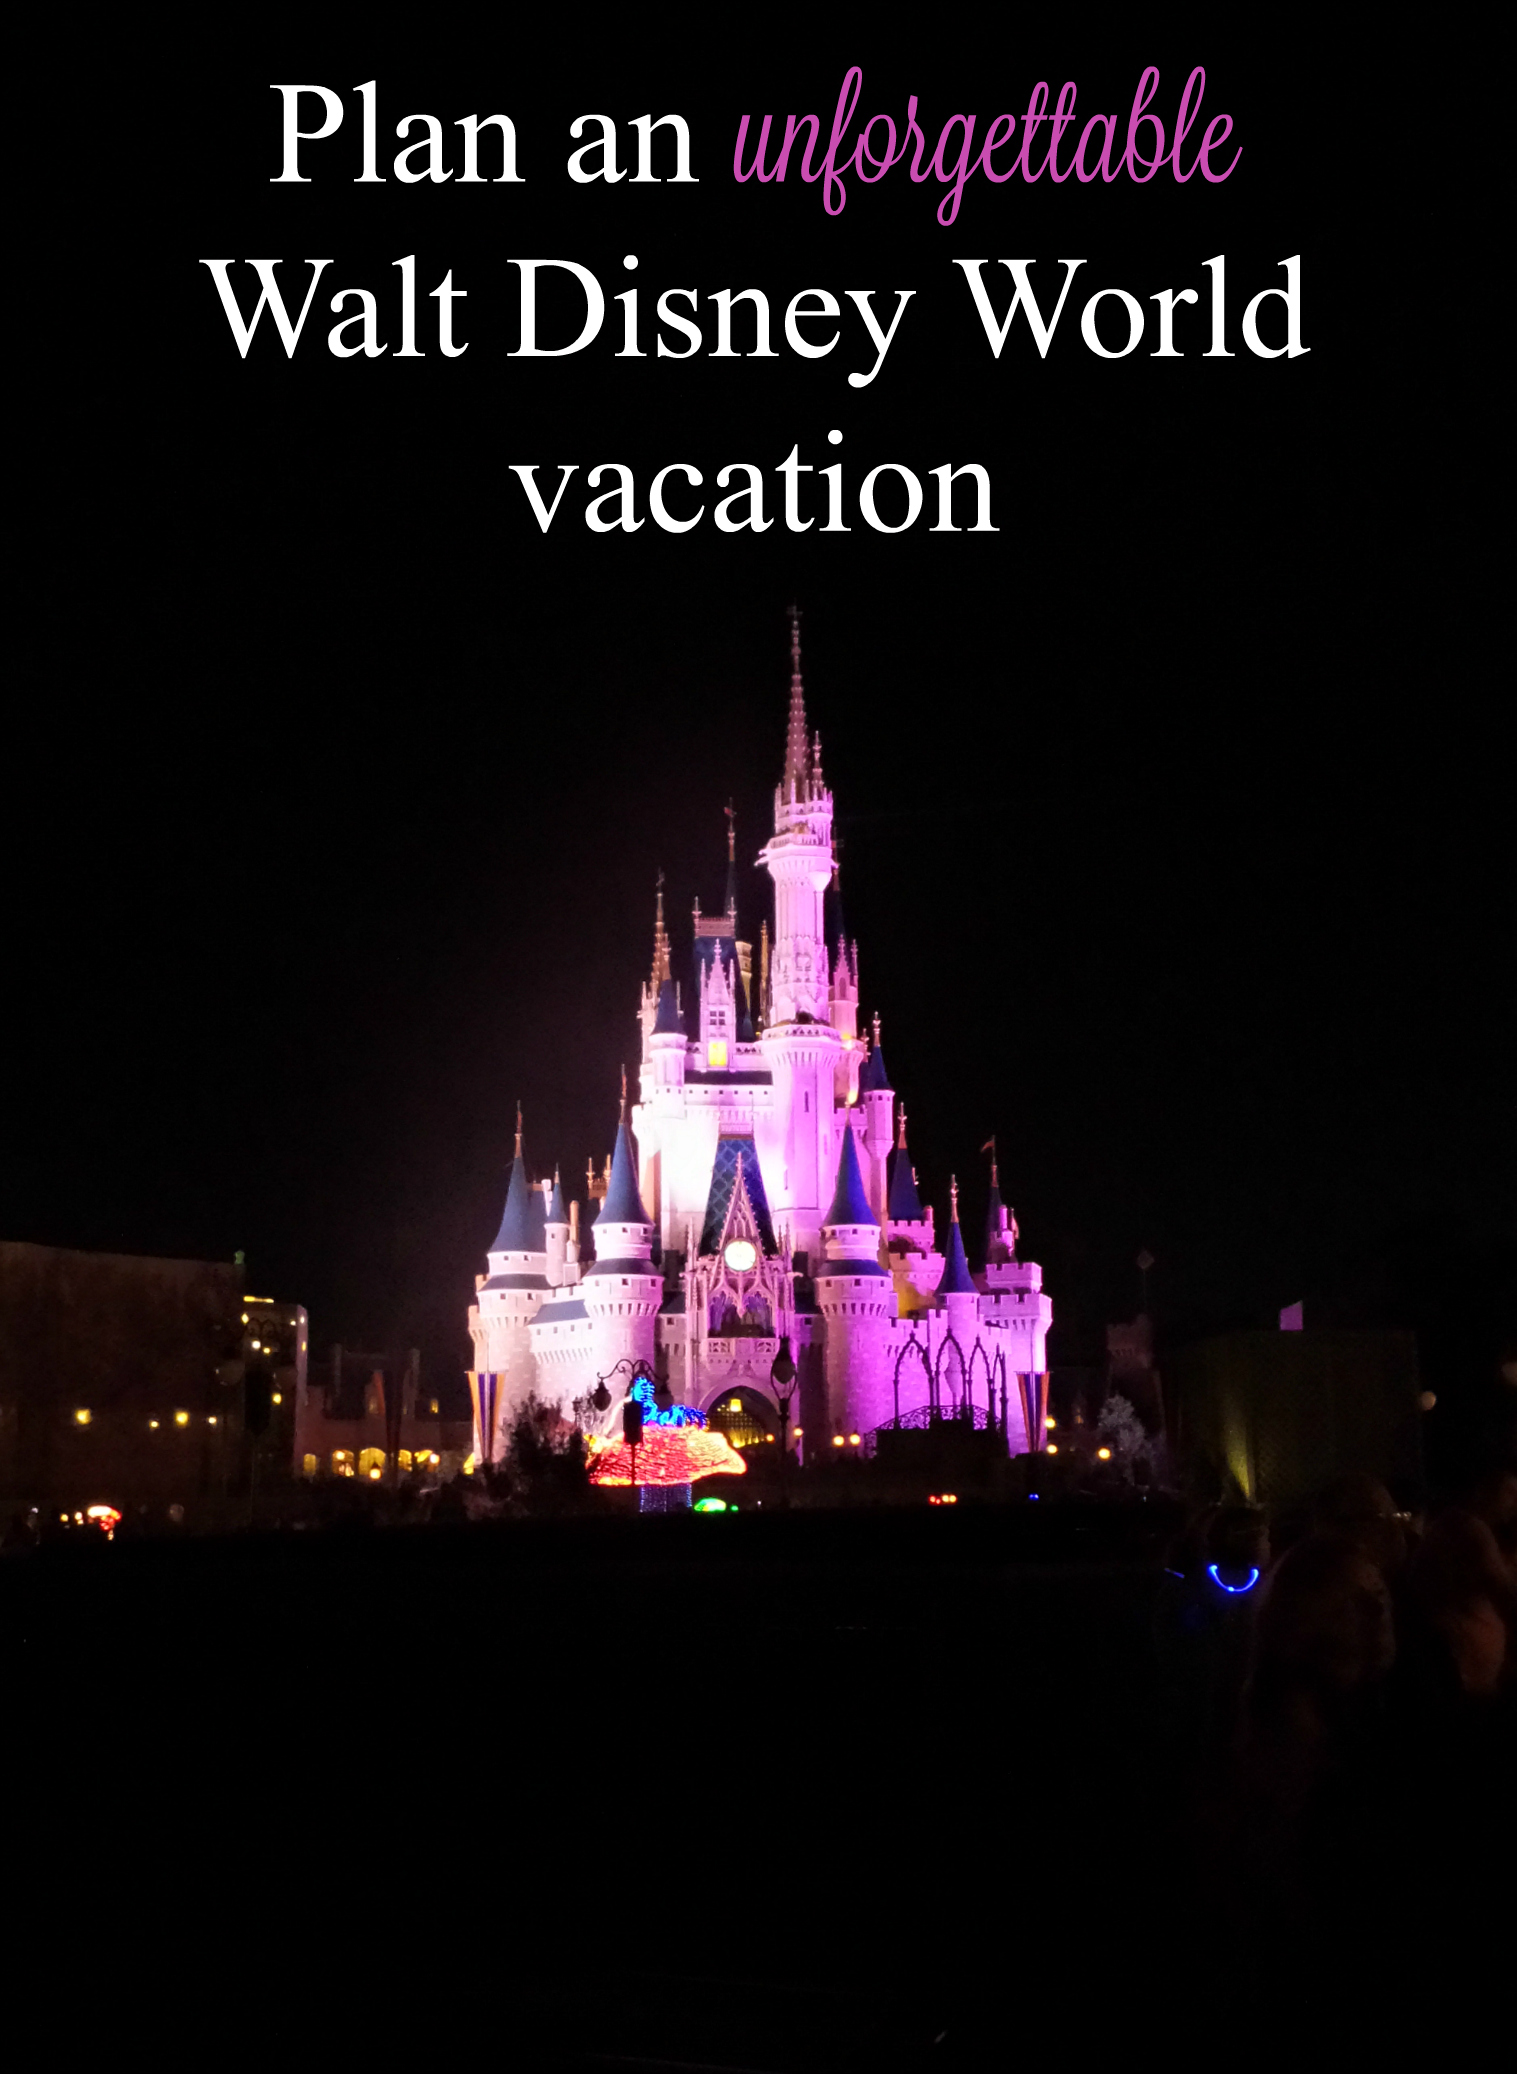 unforgettable walt disney world vacation